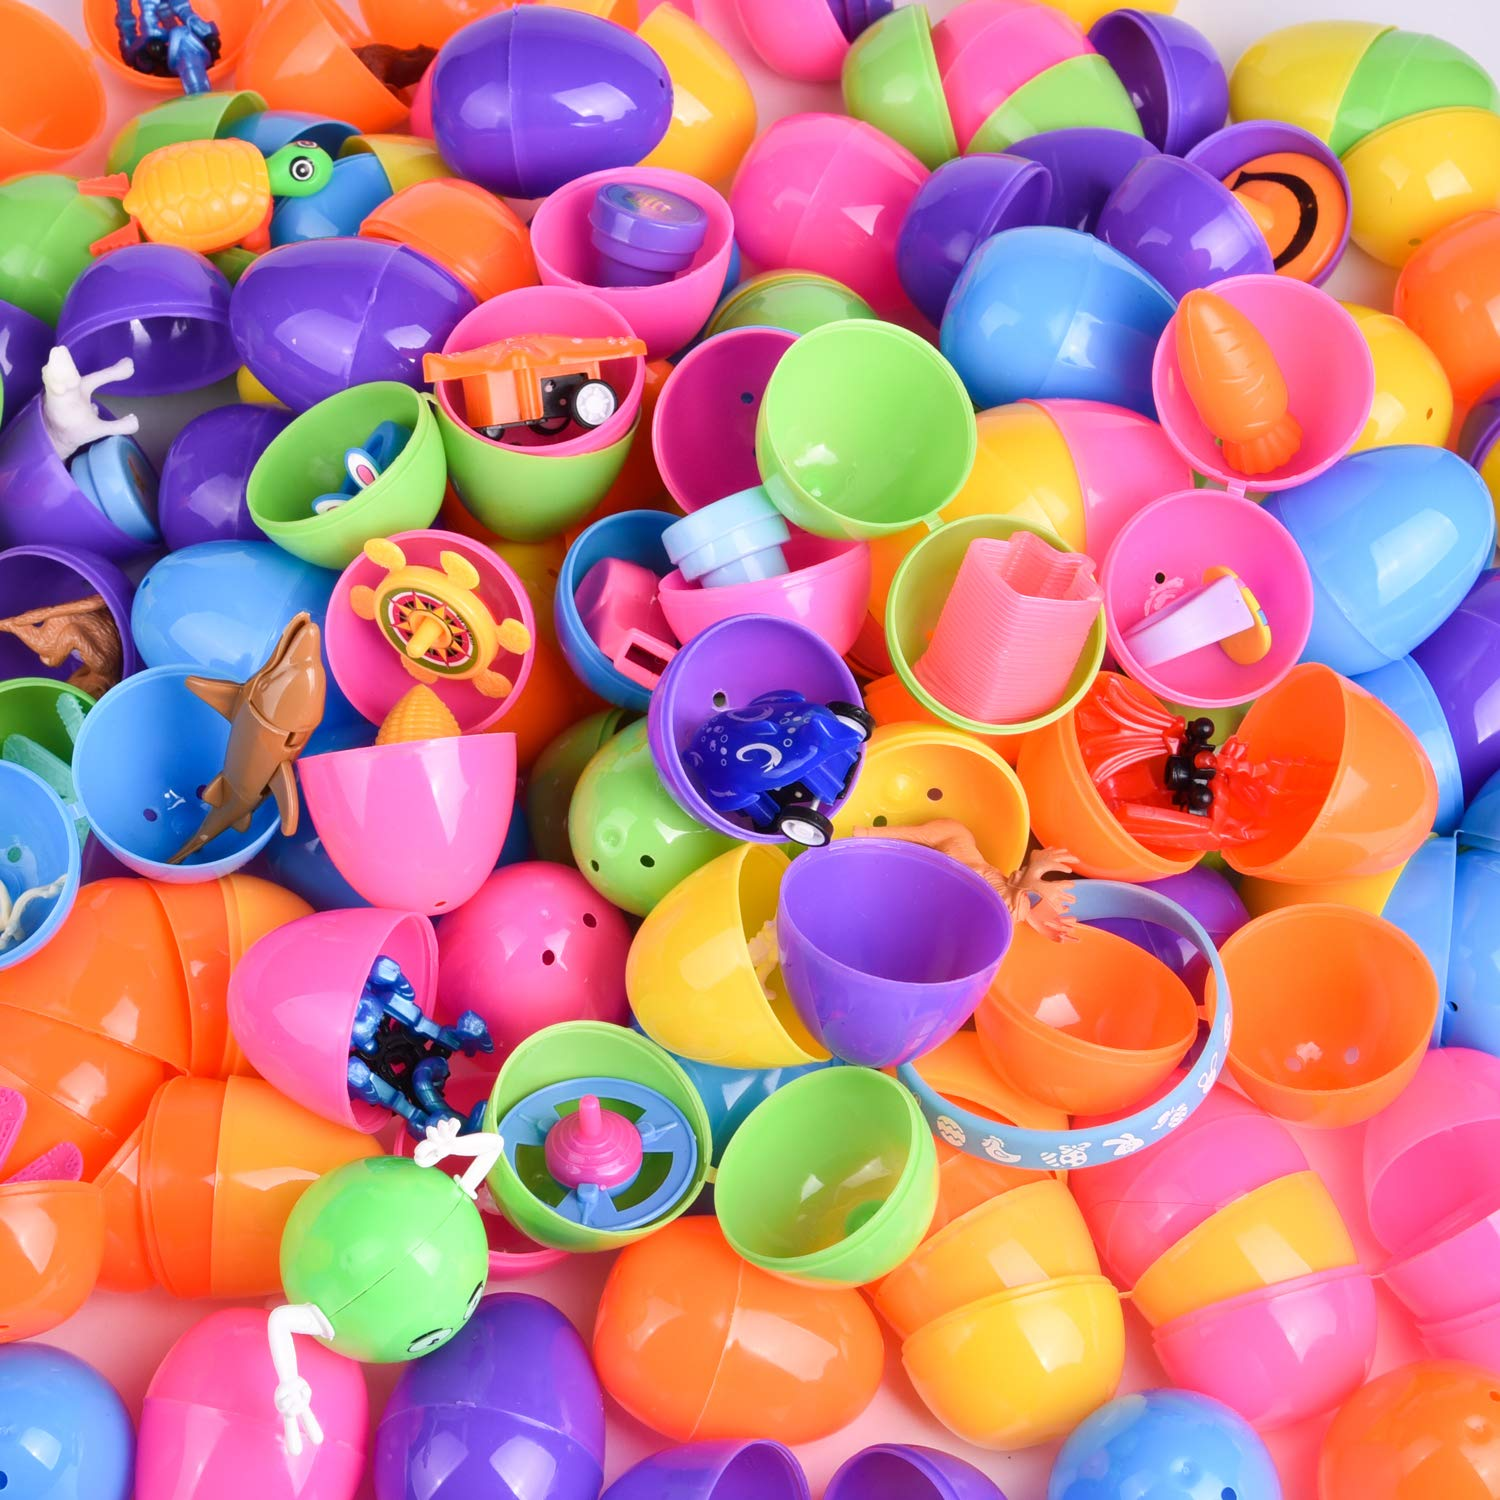 100PCs Easter Egg Stuffers Mini Toys Filled Easter Eggs Easter Egg Fillers Pinata Toys and More Easter Hunt Easter Basket Stuffers with Small Toys Goodie Bags